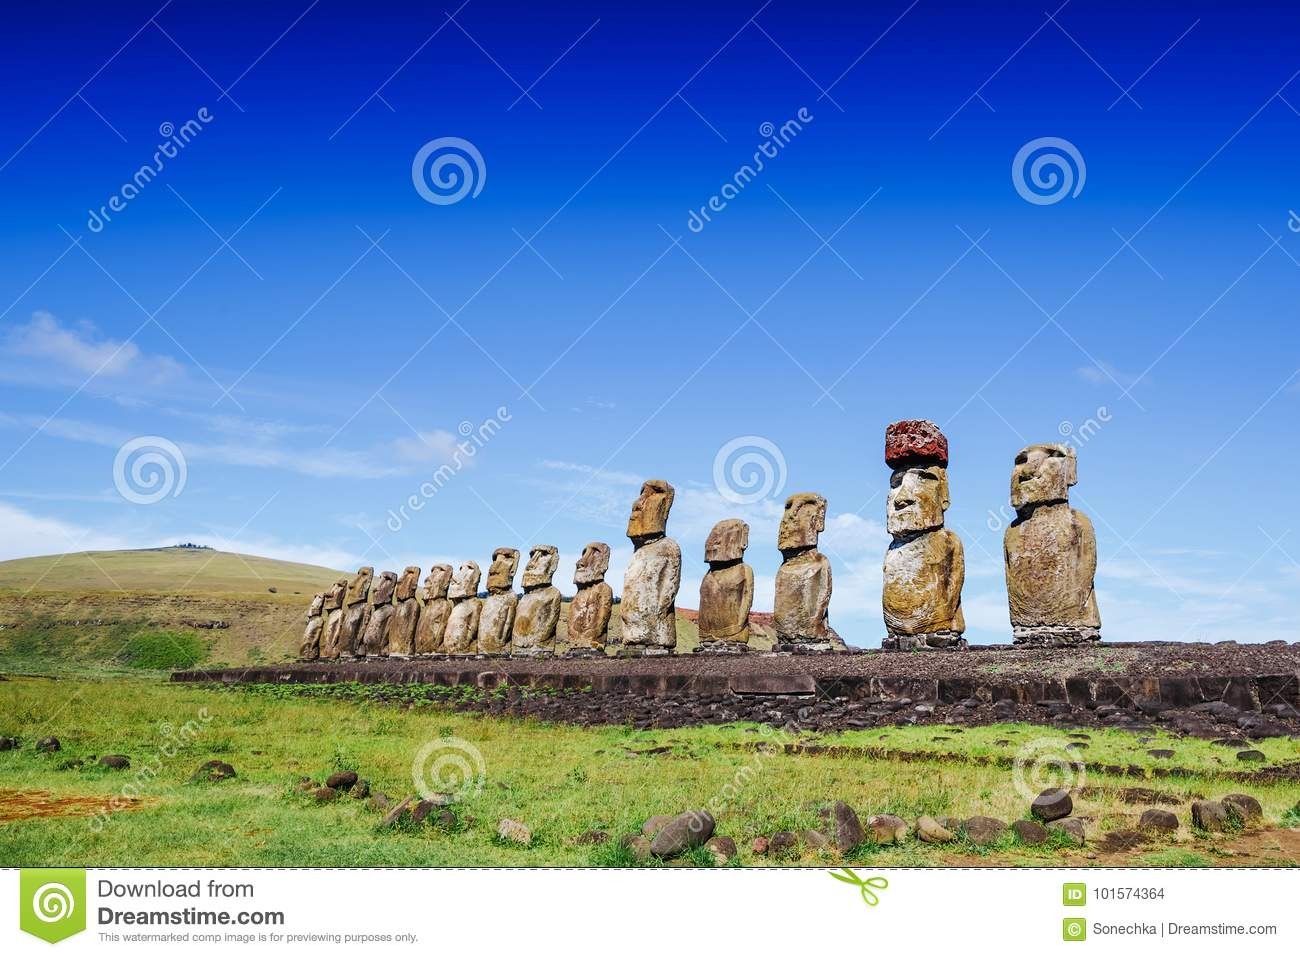 Moais statues on Ahu Tongariki - the largest ahu on Easter Island